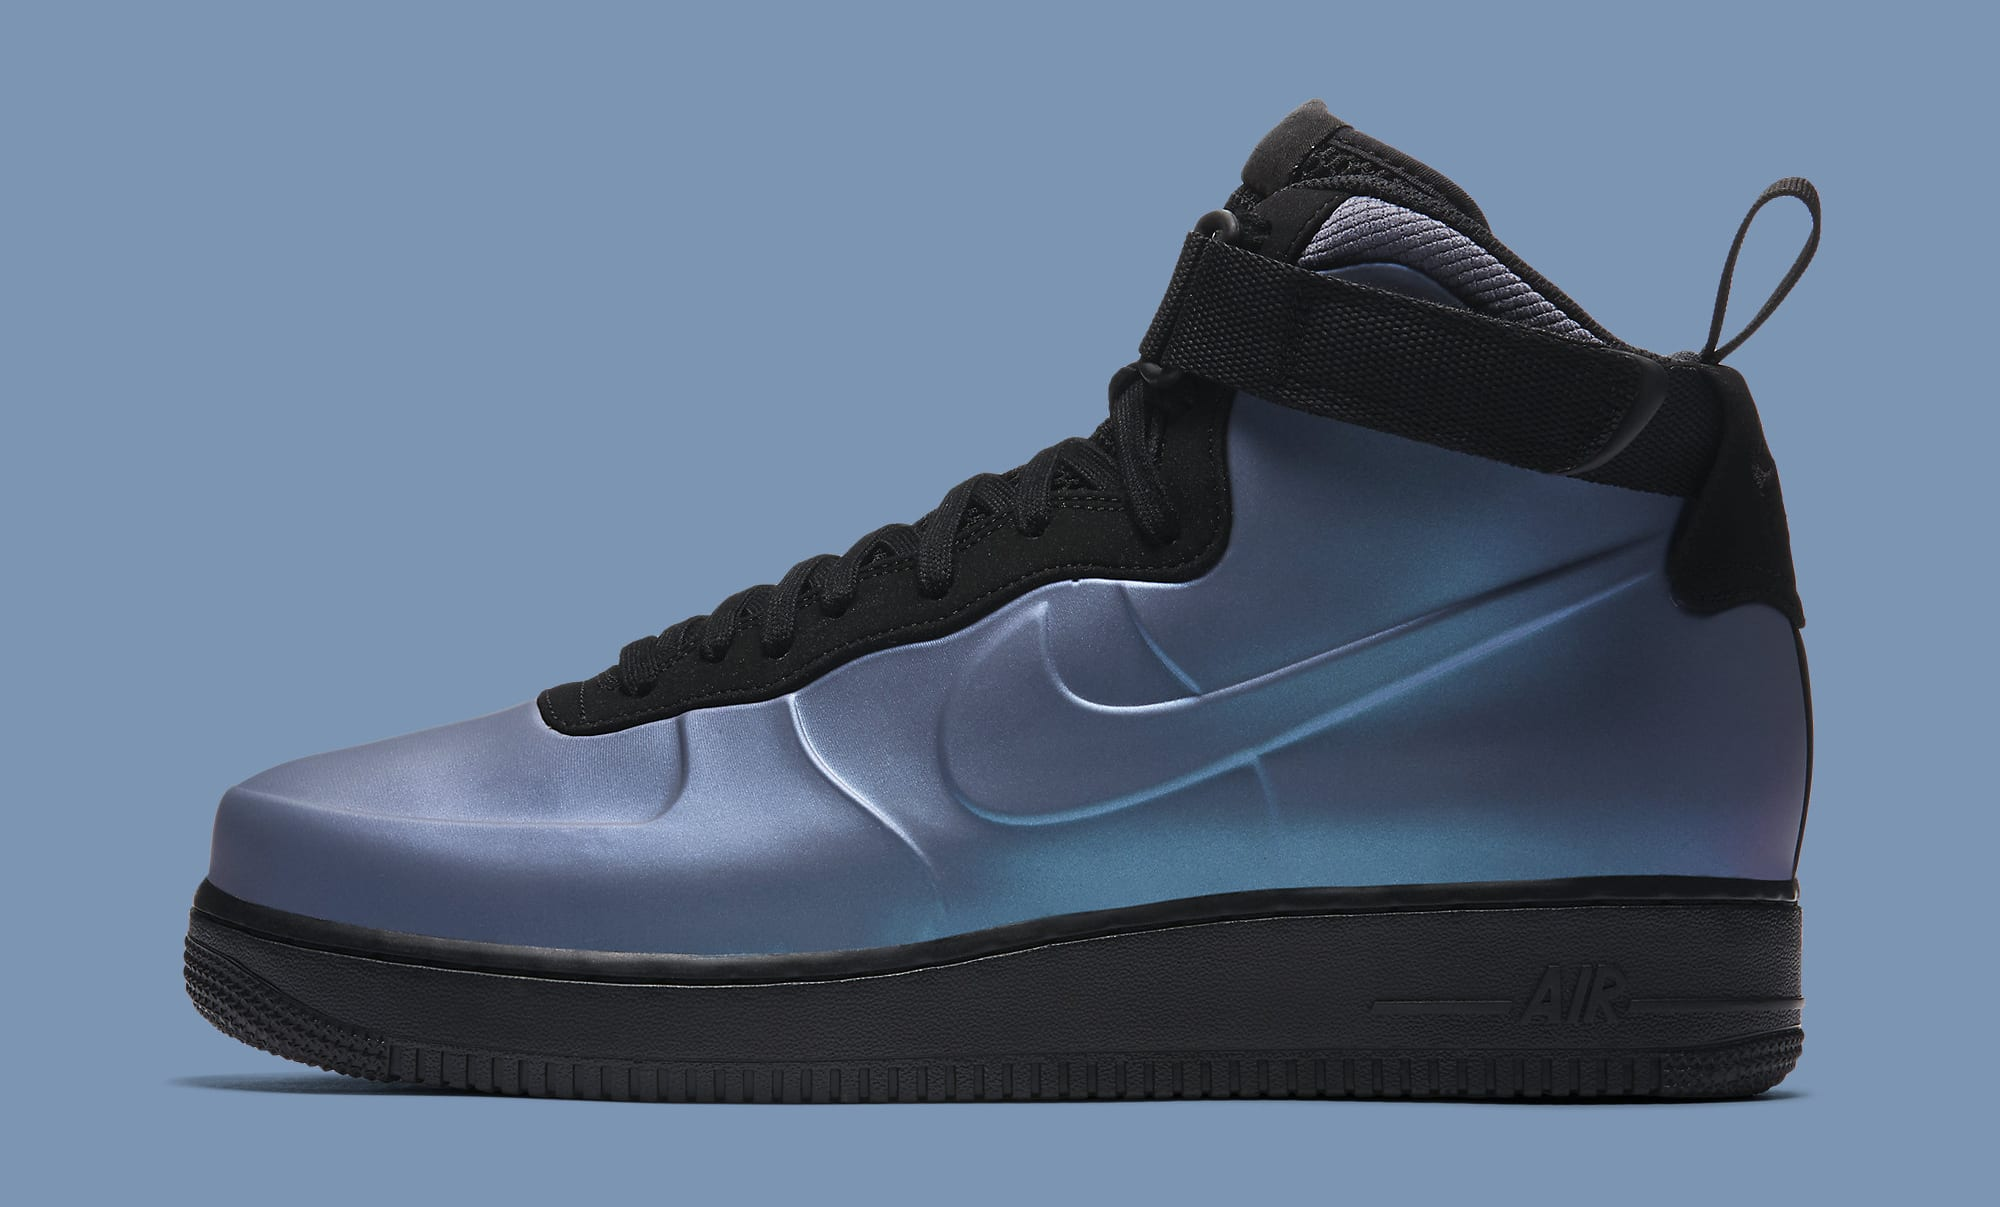 save off 9ee71 12776 Unlike most of the early Air Force 1 Foamposite releases, this pair does  not expose the midsole s Nike Air bubble, and instead has a more  traditional opaque ...